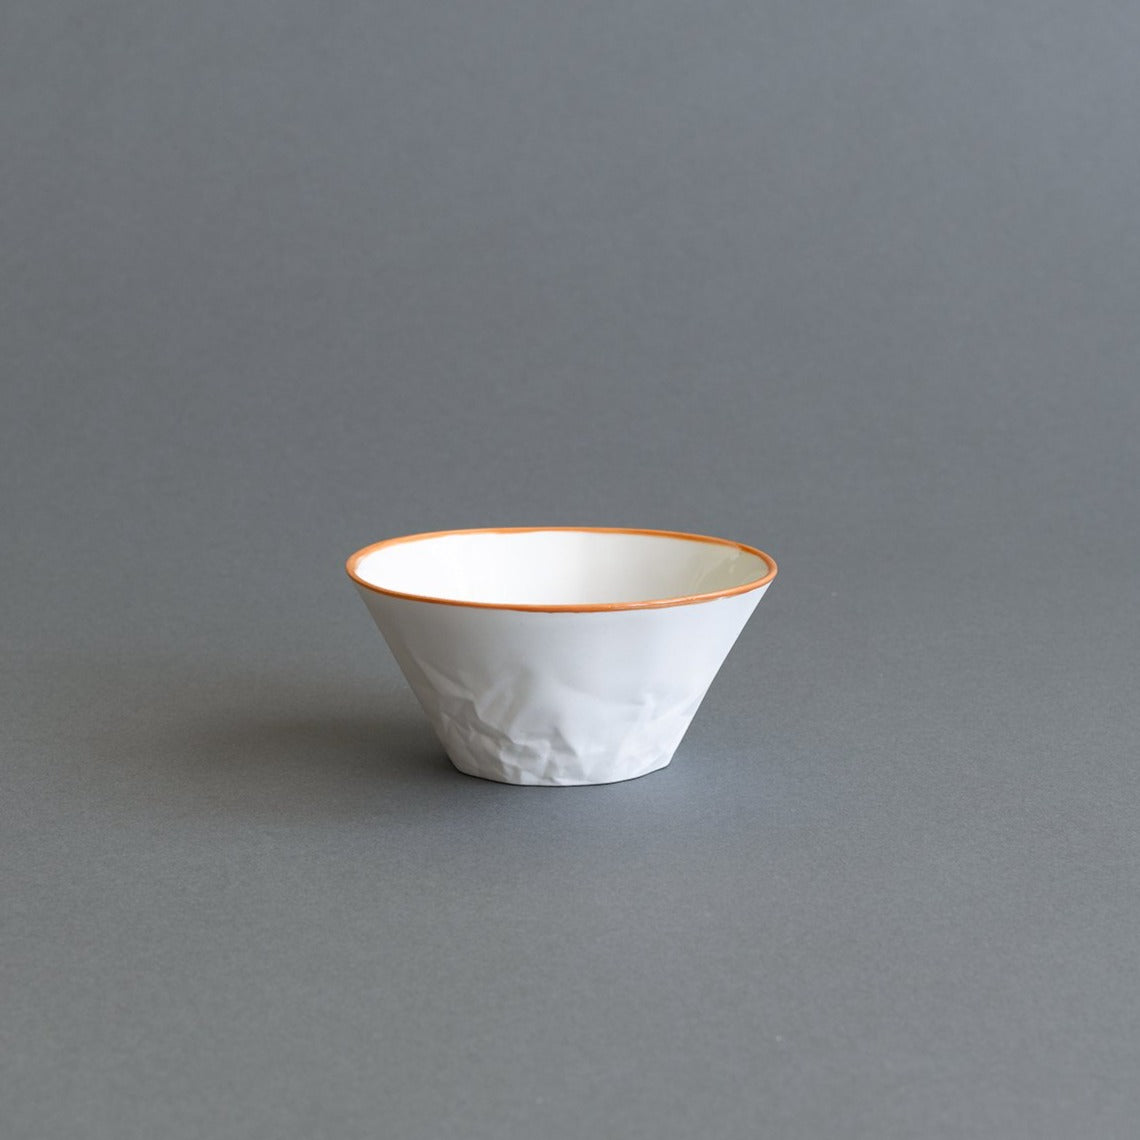 Orange Ceramic Dessert/Breakfast Bowl - Paper